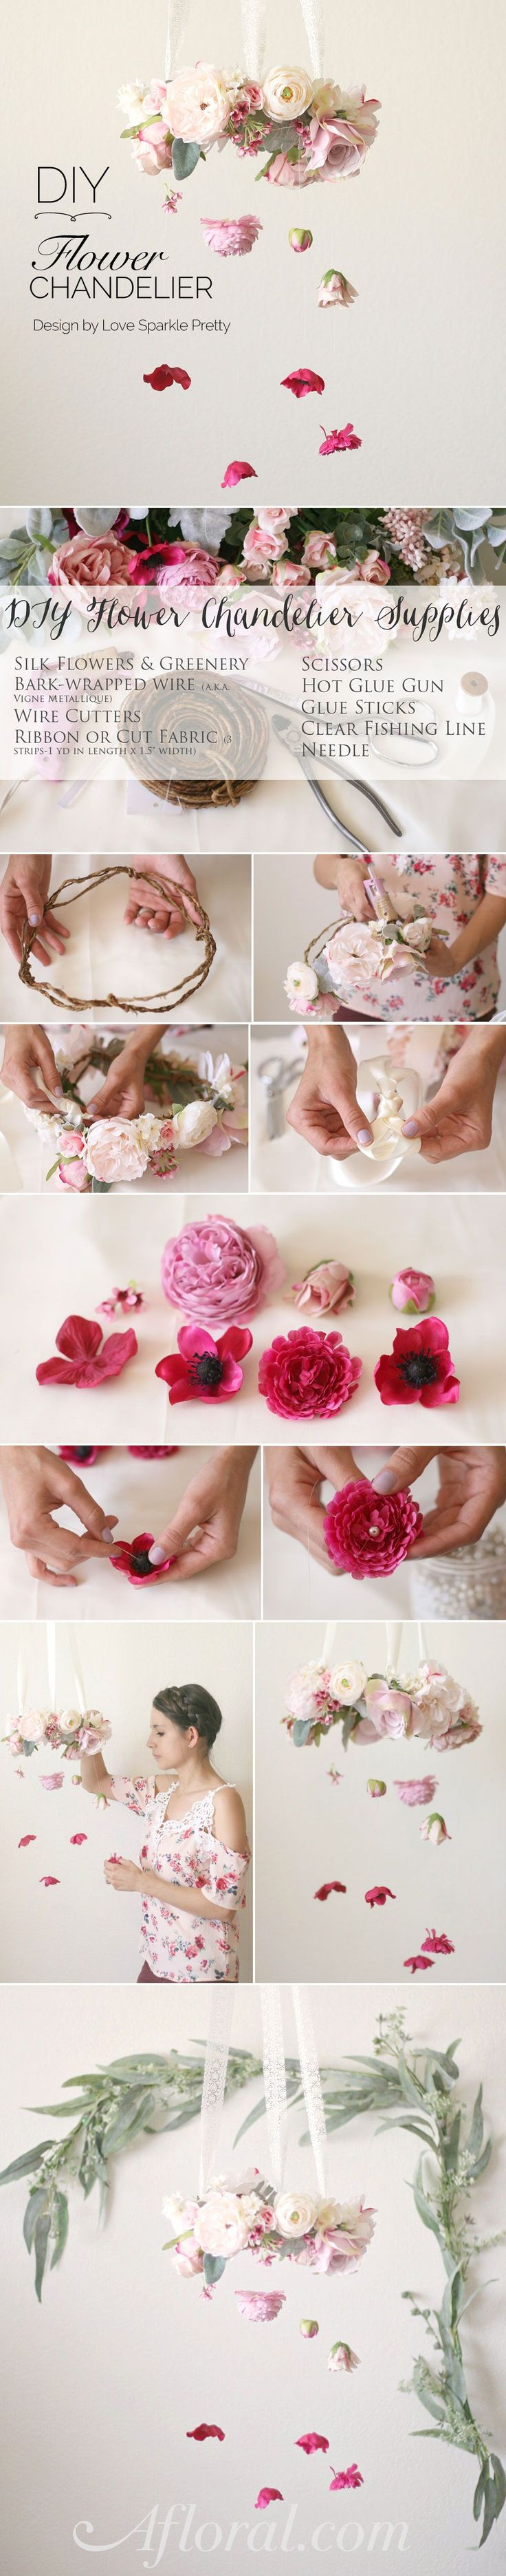 Make this lovely silk flower chandelier for your wedding. Cute for the sweetheart table or make a few for a backdrop at the ceremony! #diywedding  Design by Love Sparkle Pretty